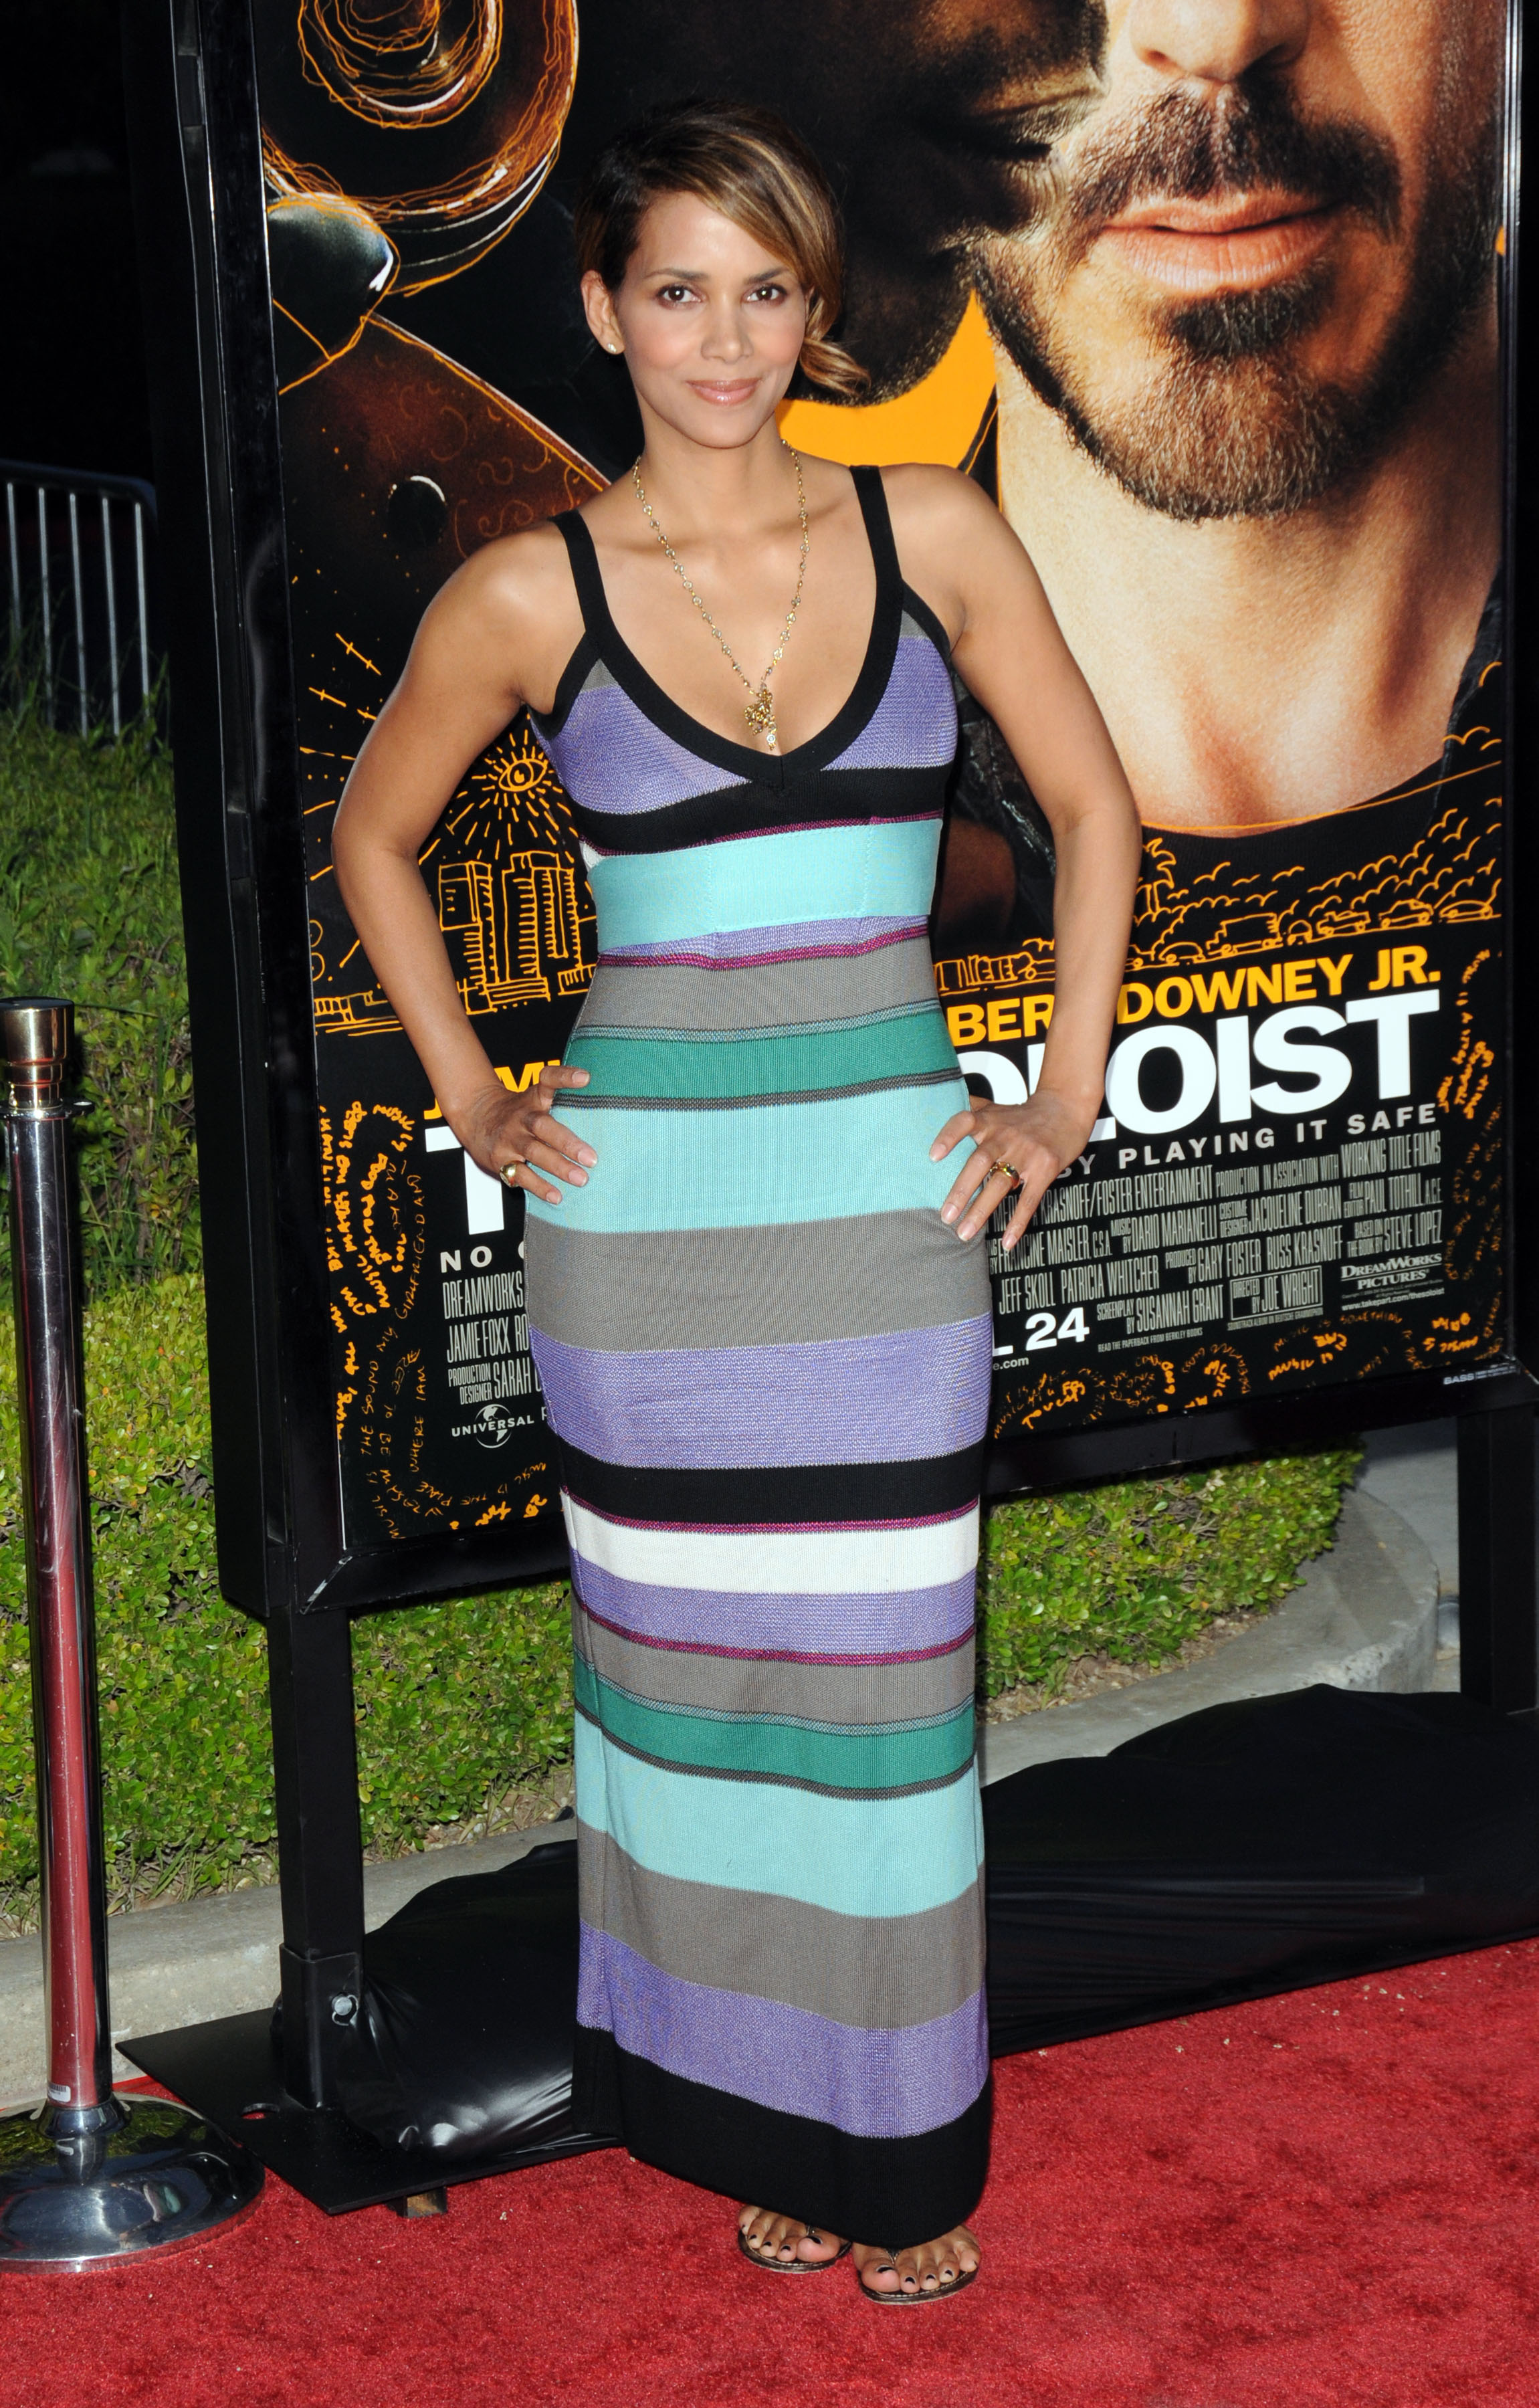 65638_Halle_Berry_The_Soloist_premiere_in_Los_Angeles_62_122_521lo.jpg